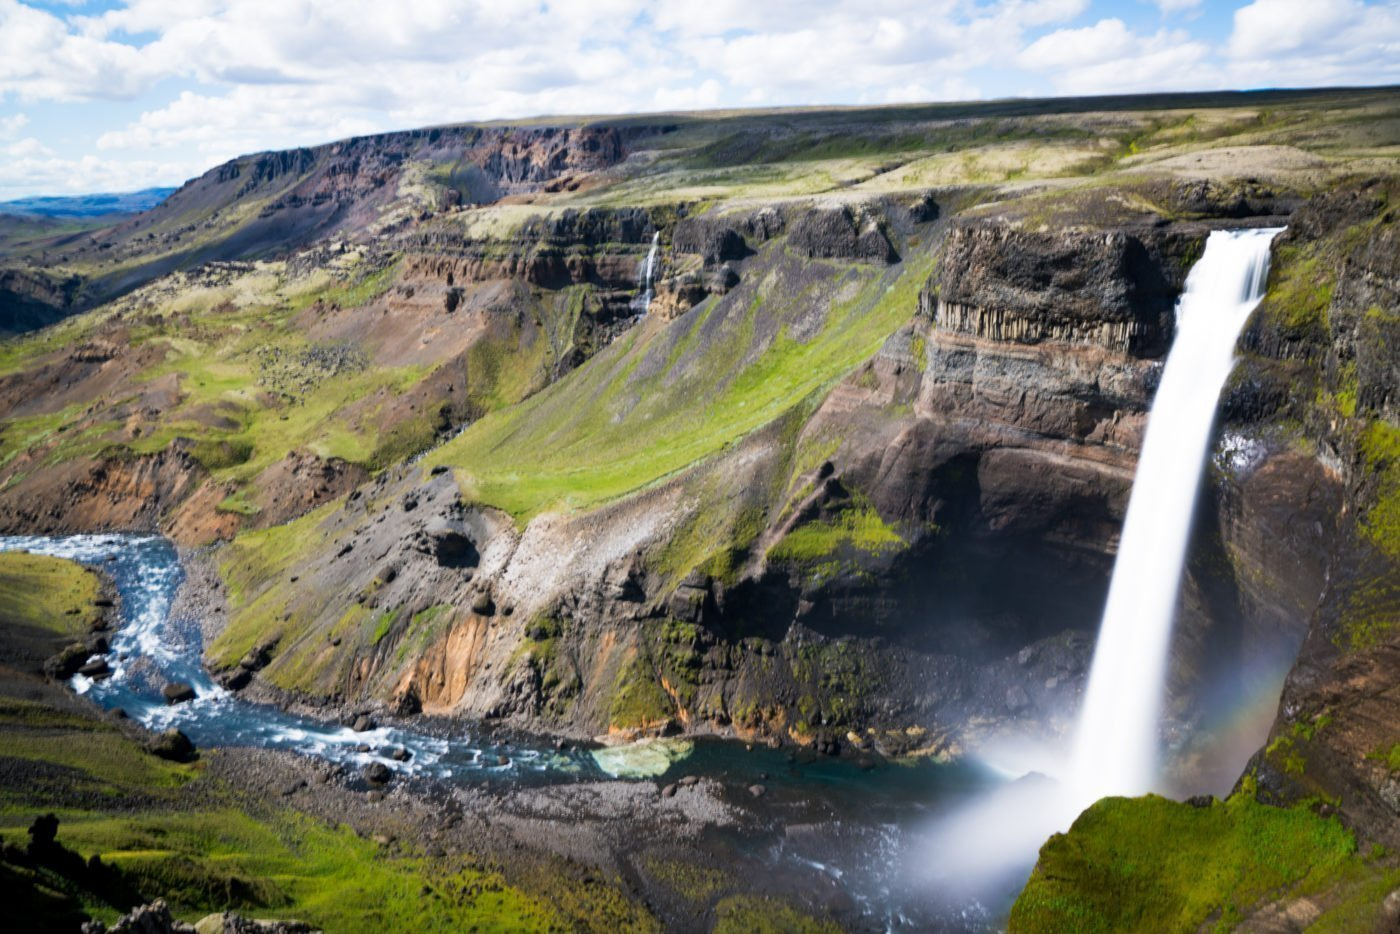 haifoss, a hidden gem in Iceland